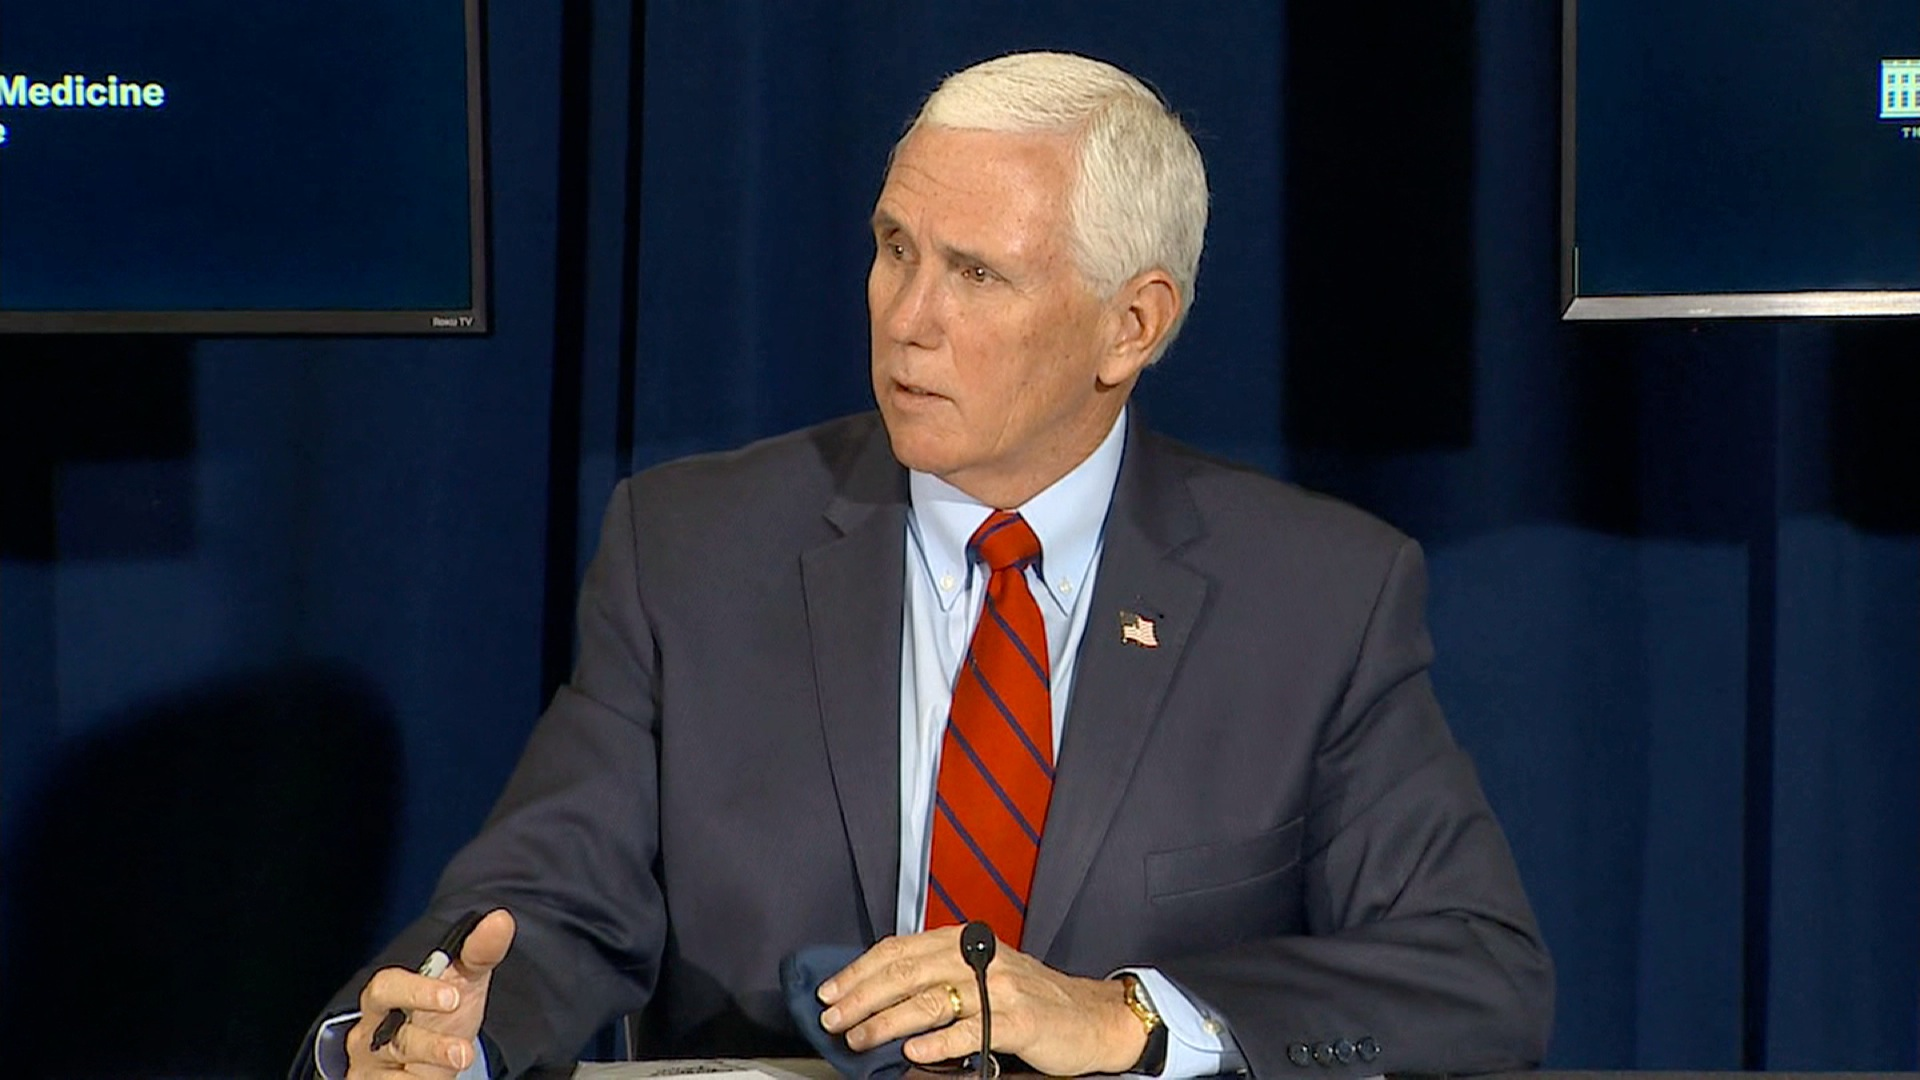 Vice President Mike Pence speaks during an Operation Warp Speed event in Greenville, South Carolina, on December 10.